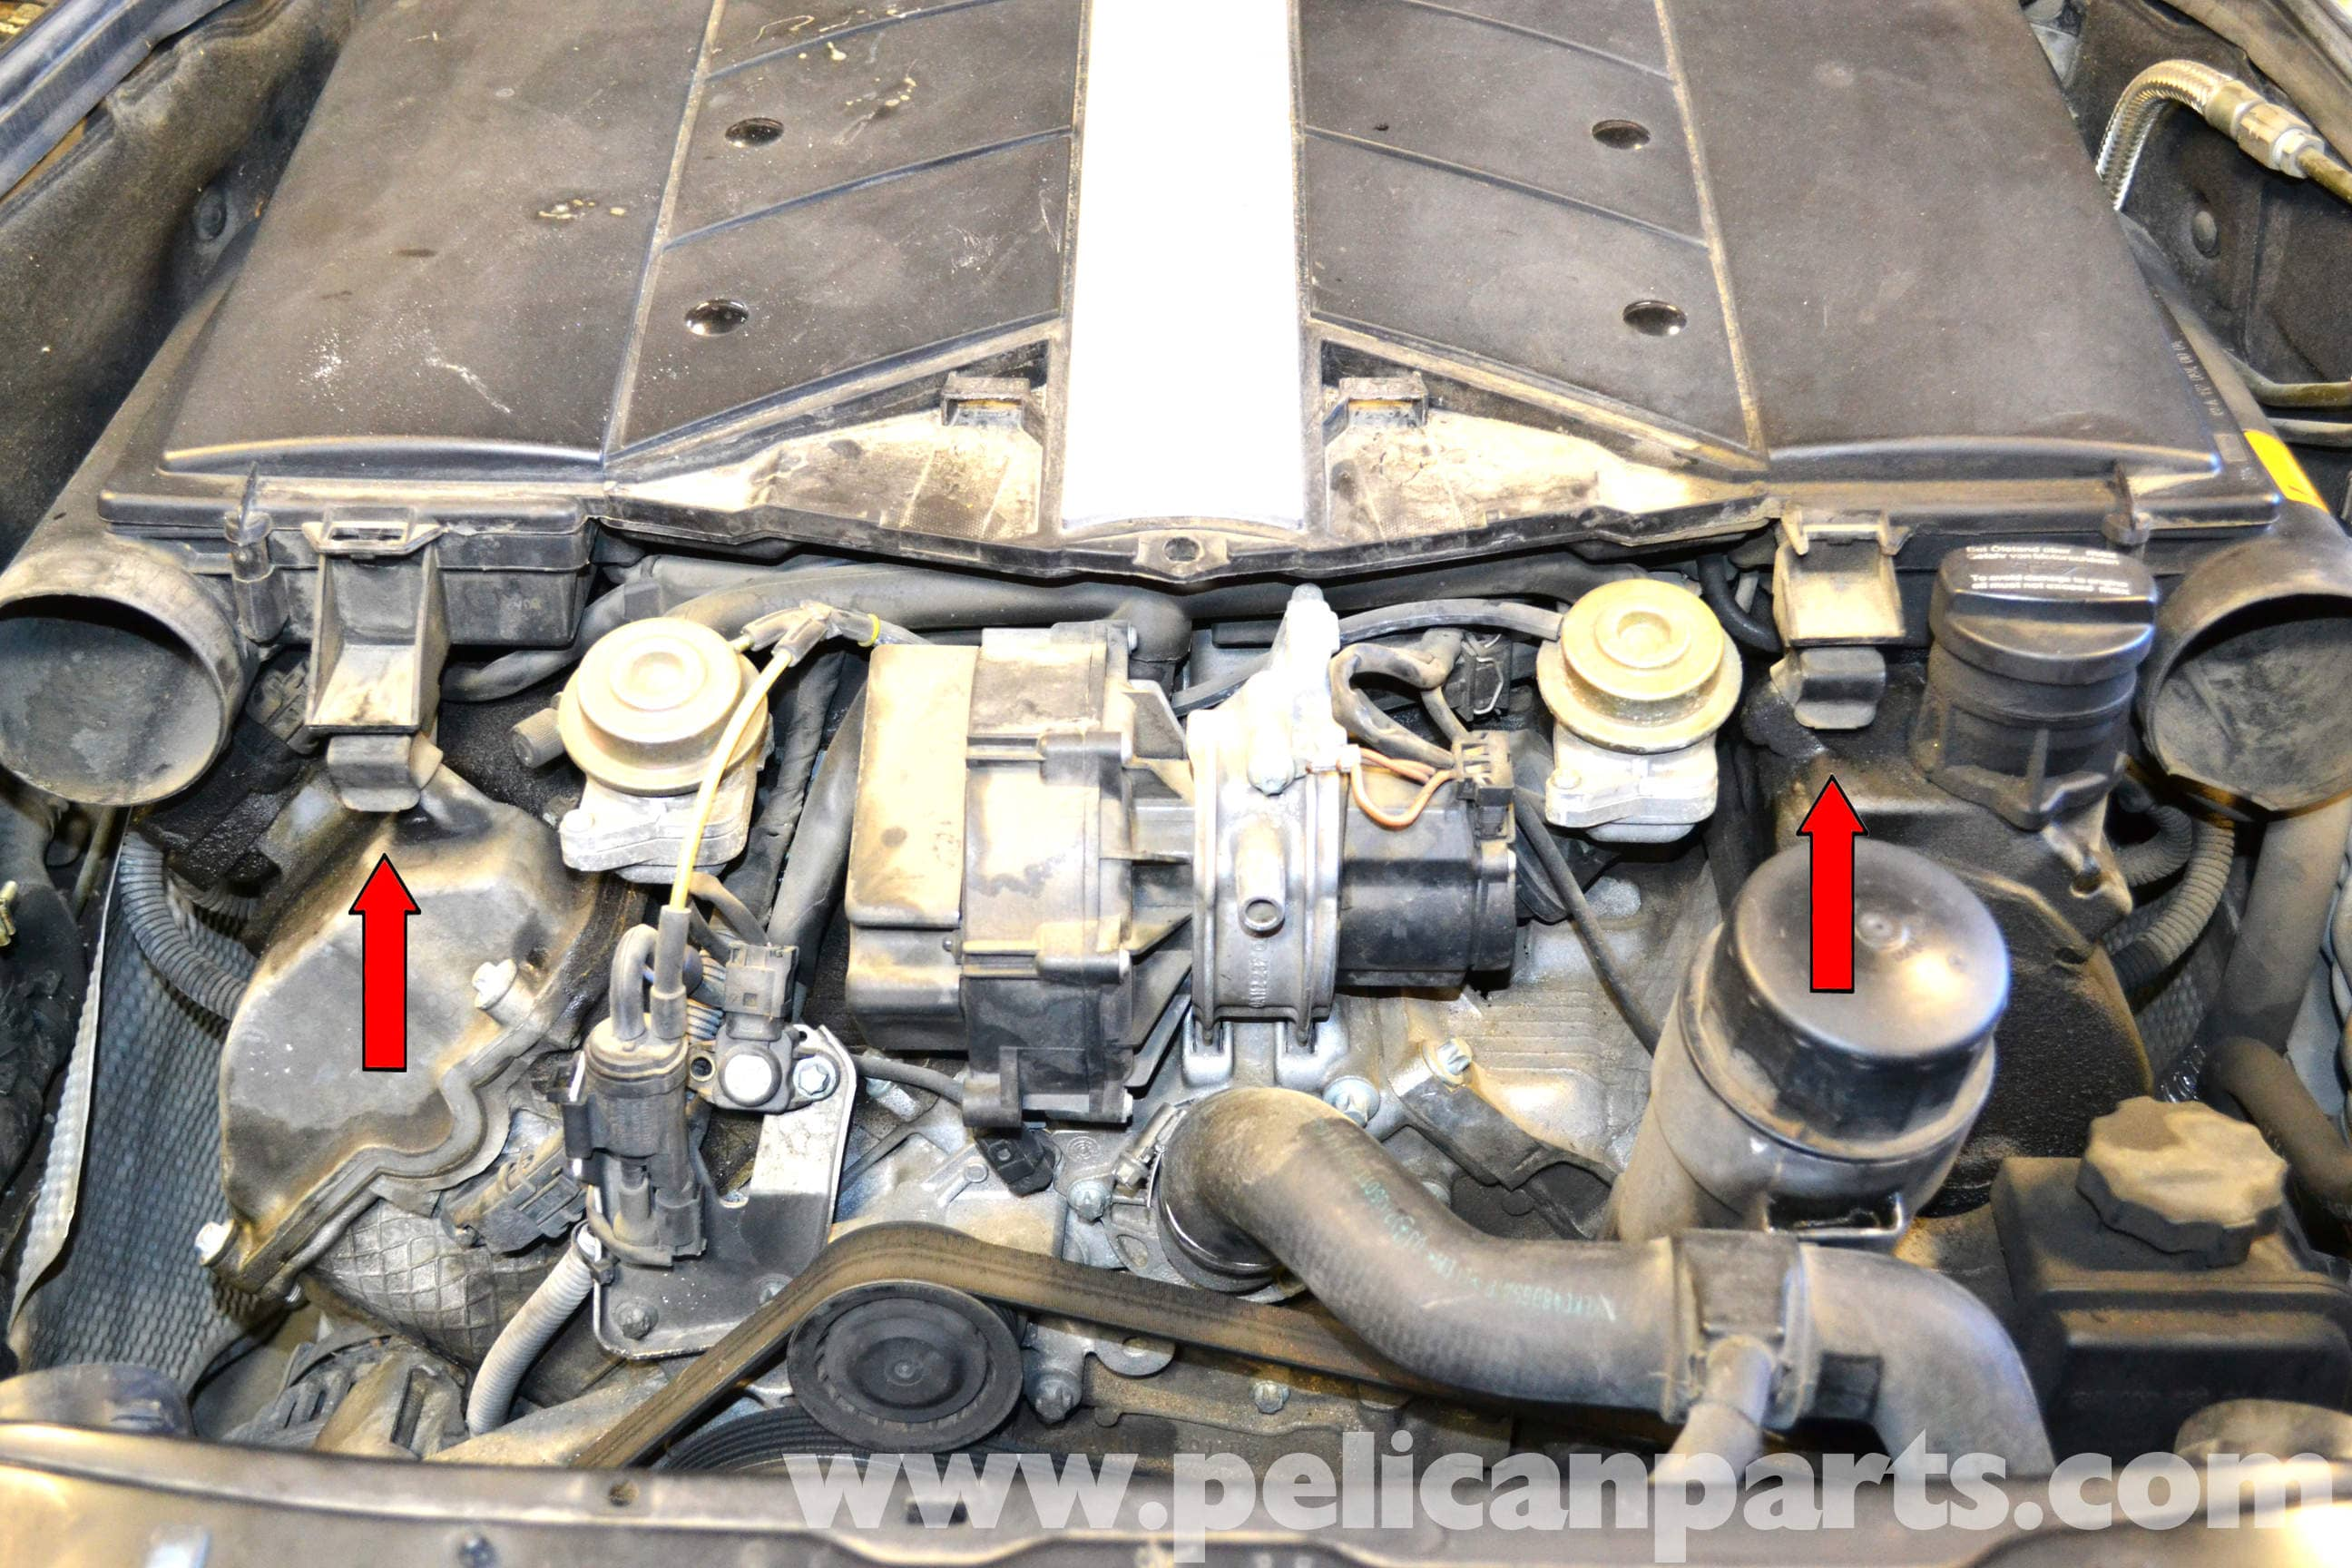 C240 Engine Diagram Wiring Library Chrysler Pacifica Fuse Box Large Image Extra